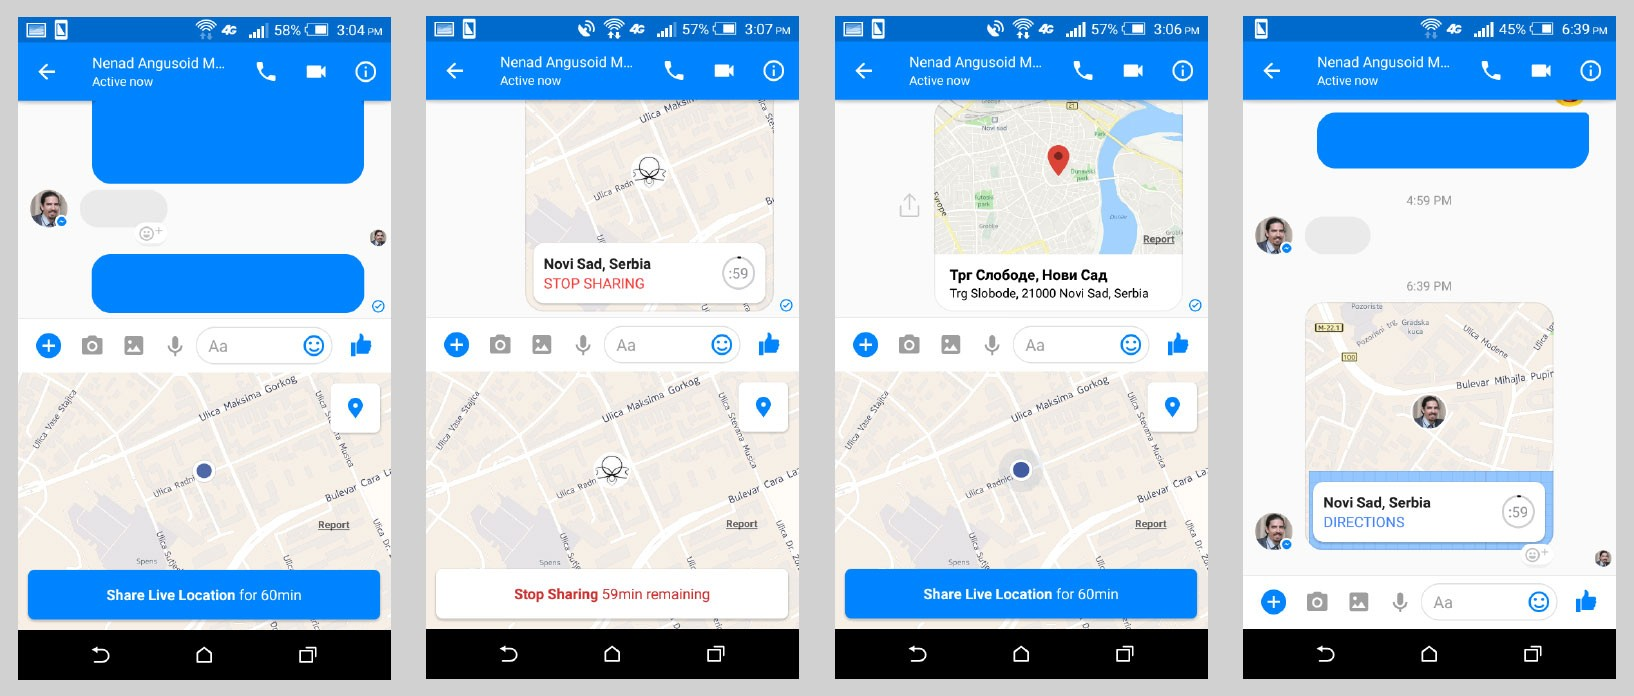 Facebook location sharing steps and options